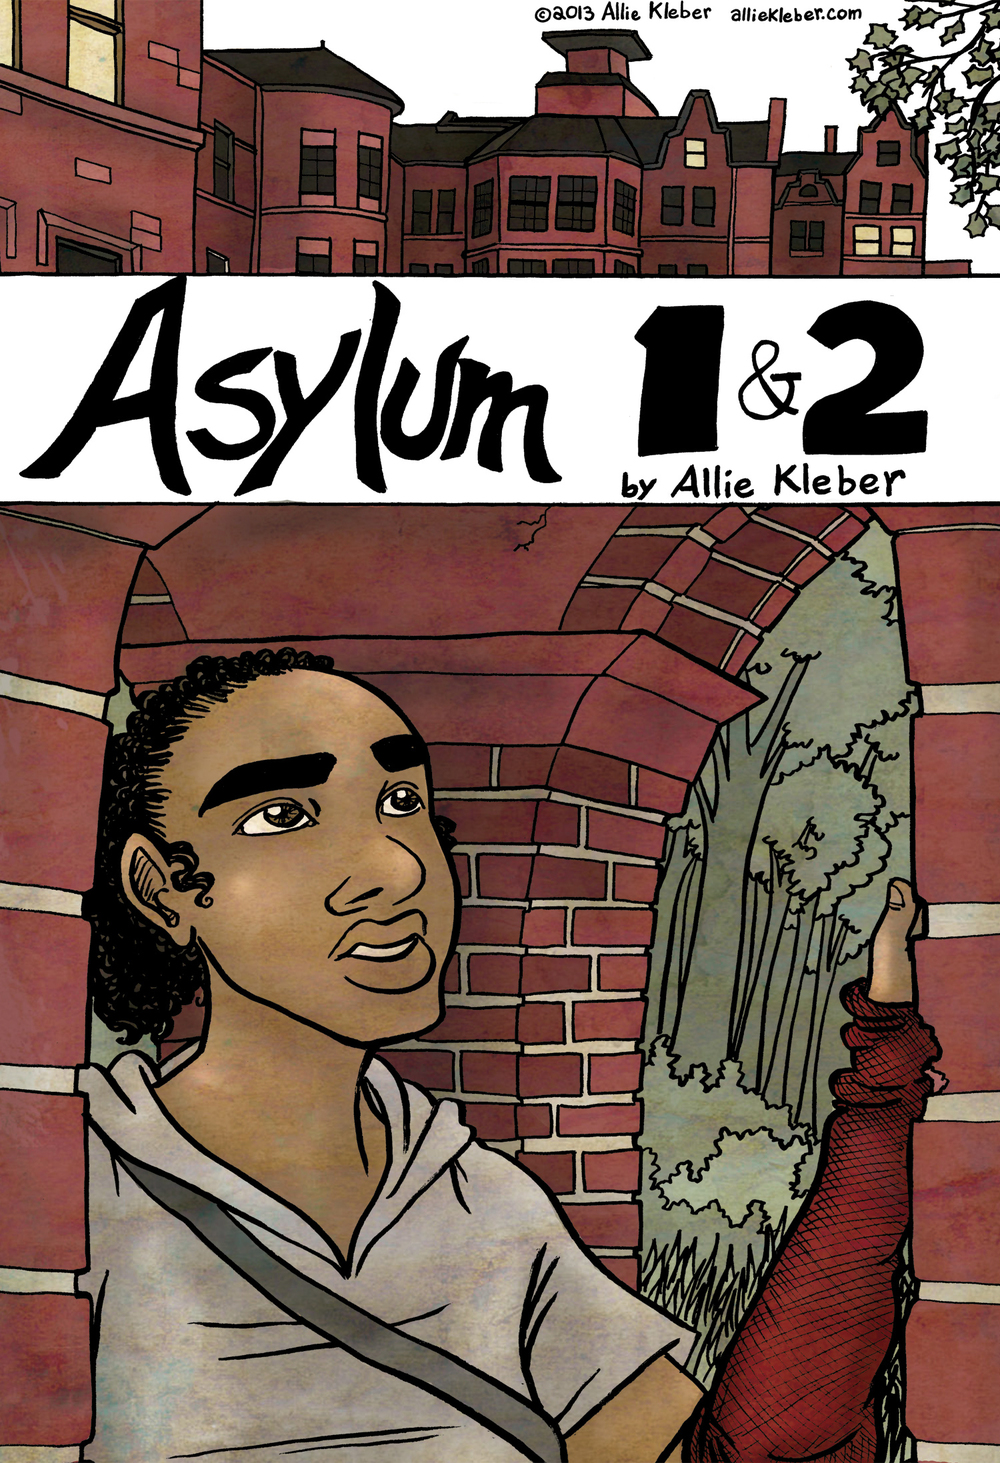 A  sylum   is a graphic novel project, still in its conceptual stages: the story of a young woman who finds herself joining an isolated, if pleasant, community, with no memory of her life before or the outside world. This apparent safe haven hides secrets that only she will be able to uncover.  This version was created for my Masters thesis at the Center for Cartoon Studies. It is a rough draft of the opening chapters of the story.